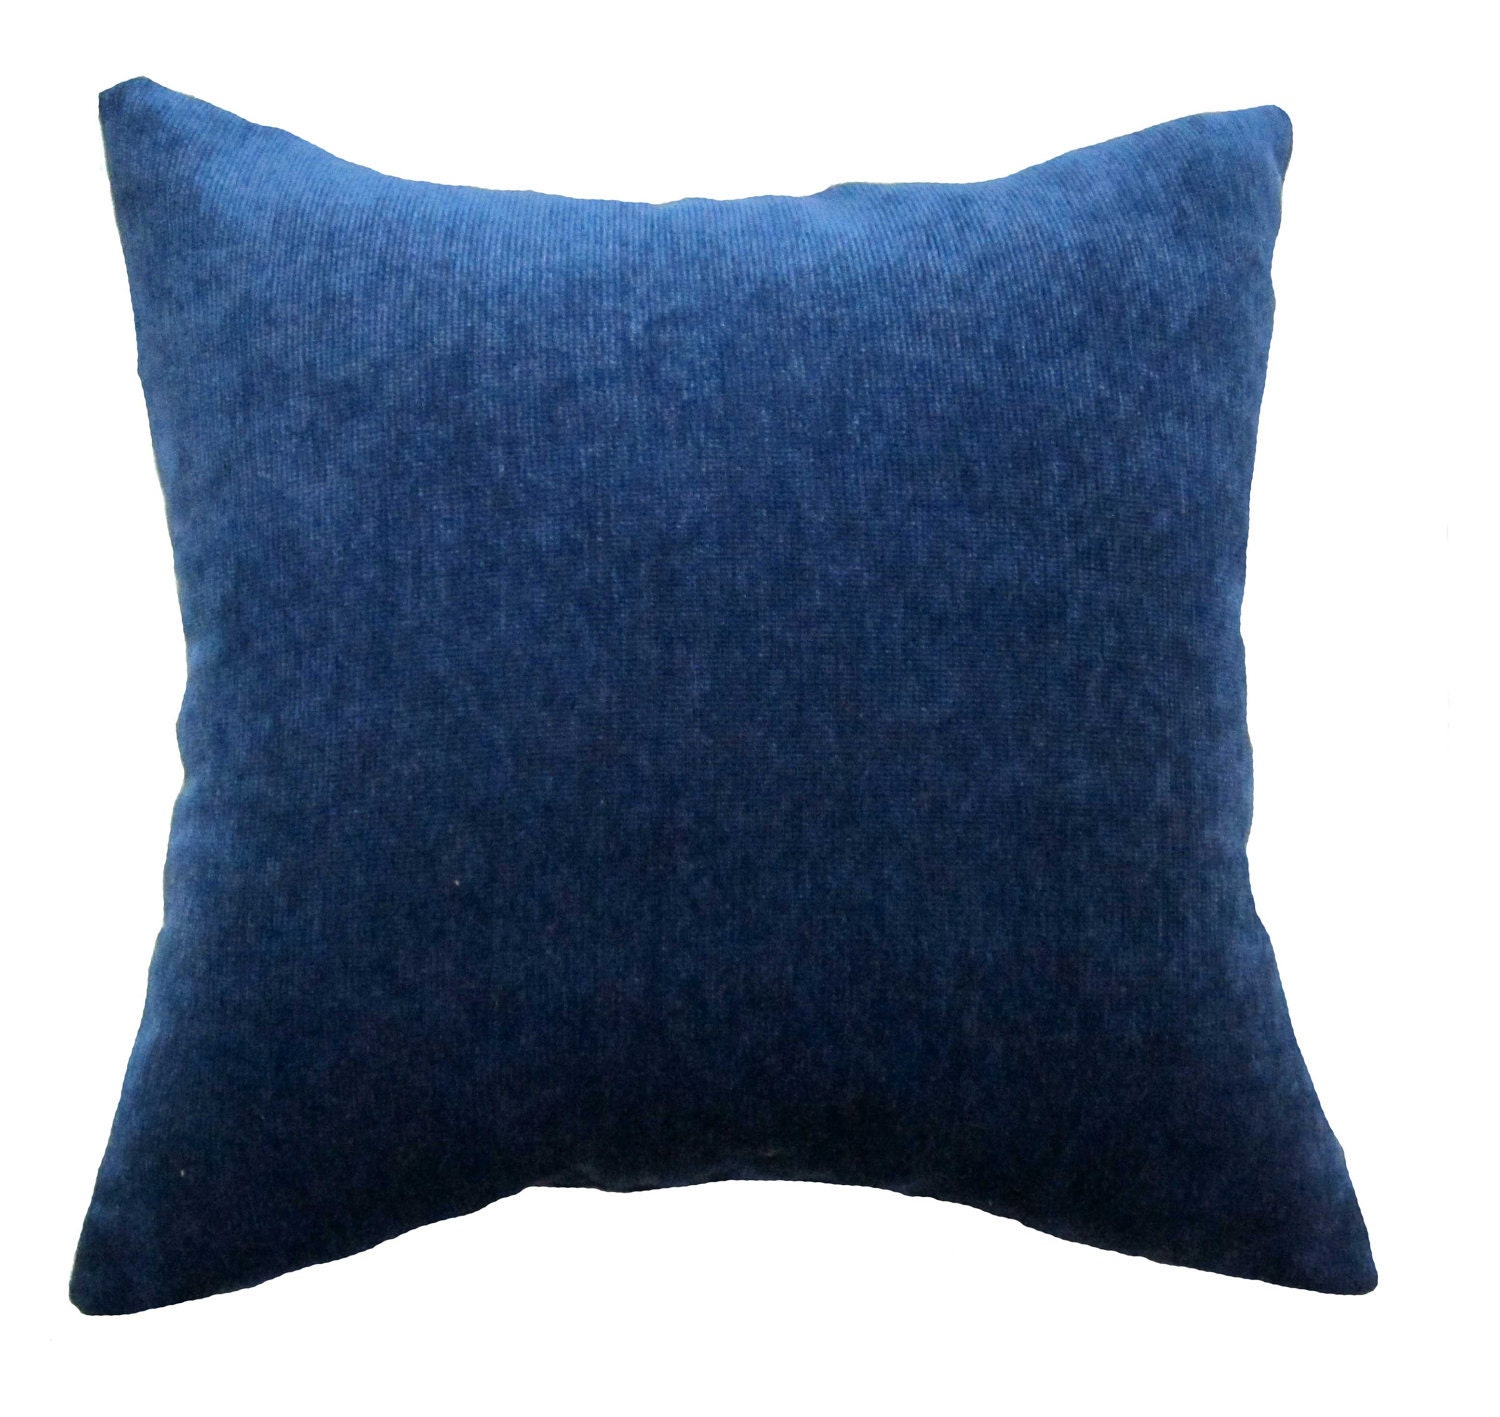 Blue Microsuede Throw Pillows : Items similar to 17x17 Navy Blue Suede Decorative Throw Pillow Cover on Etsy